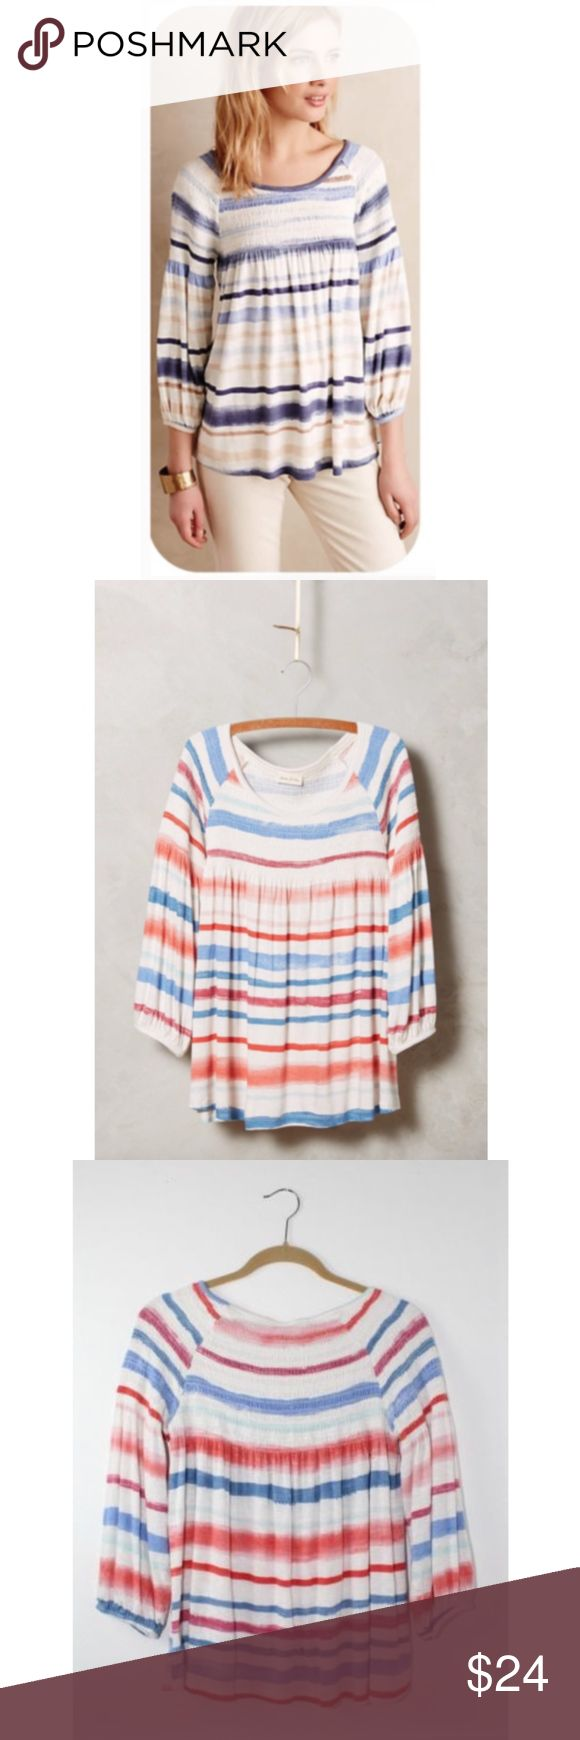 """Meadow Rue Anthro Striped Smocked Peasant Blouse Meadow Rue Anthropologie Striped Smocked Peasant Blouse, Size Medium, Silky rayon-spandex jersey, cotton trim, Elastic cuff, Pullover styling, Machine wash, 3/4 Sleeve, Length approx. 27"""", Pre owned great condition! Anthropologie Tops Blouses"""